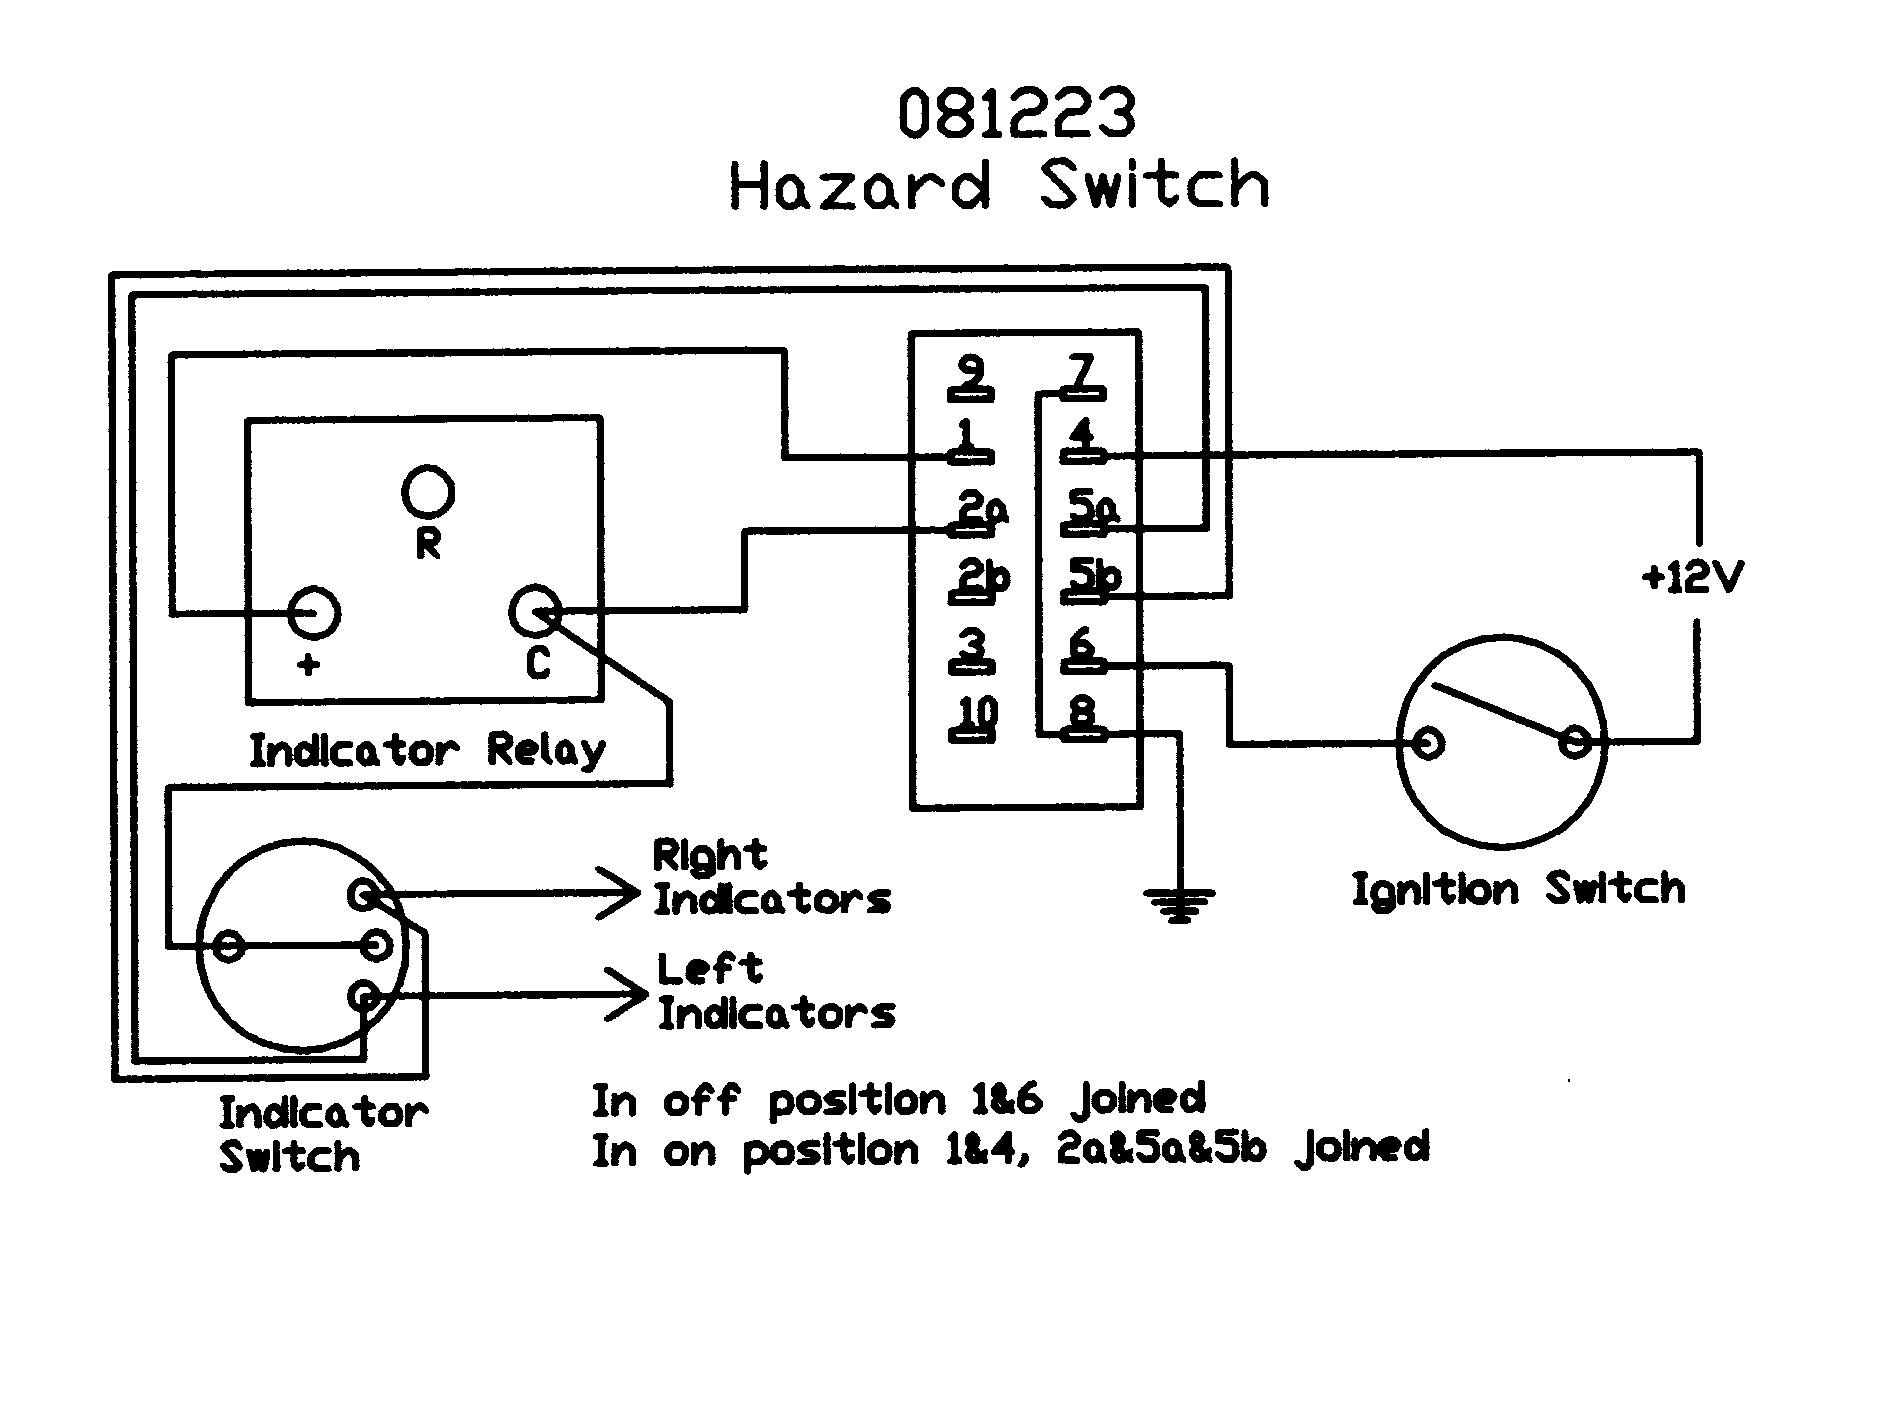 Light Switch Drawing At Free For Personal Use Wiring Diagram Two Switches One 1904x1424 Rocker Hazard